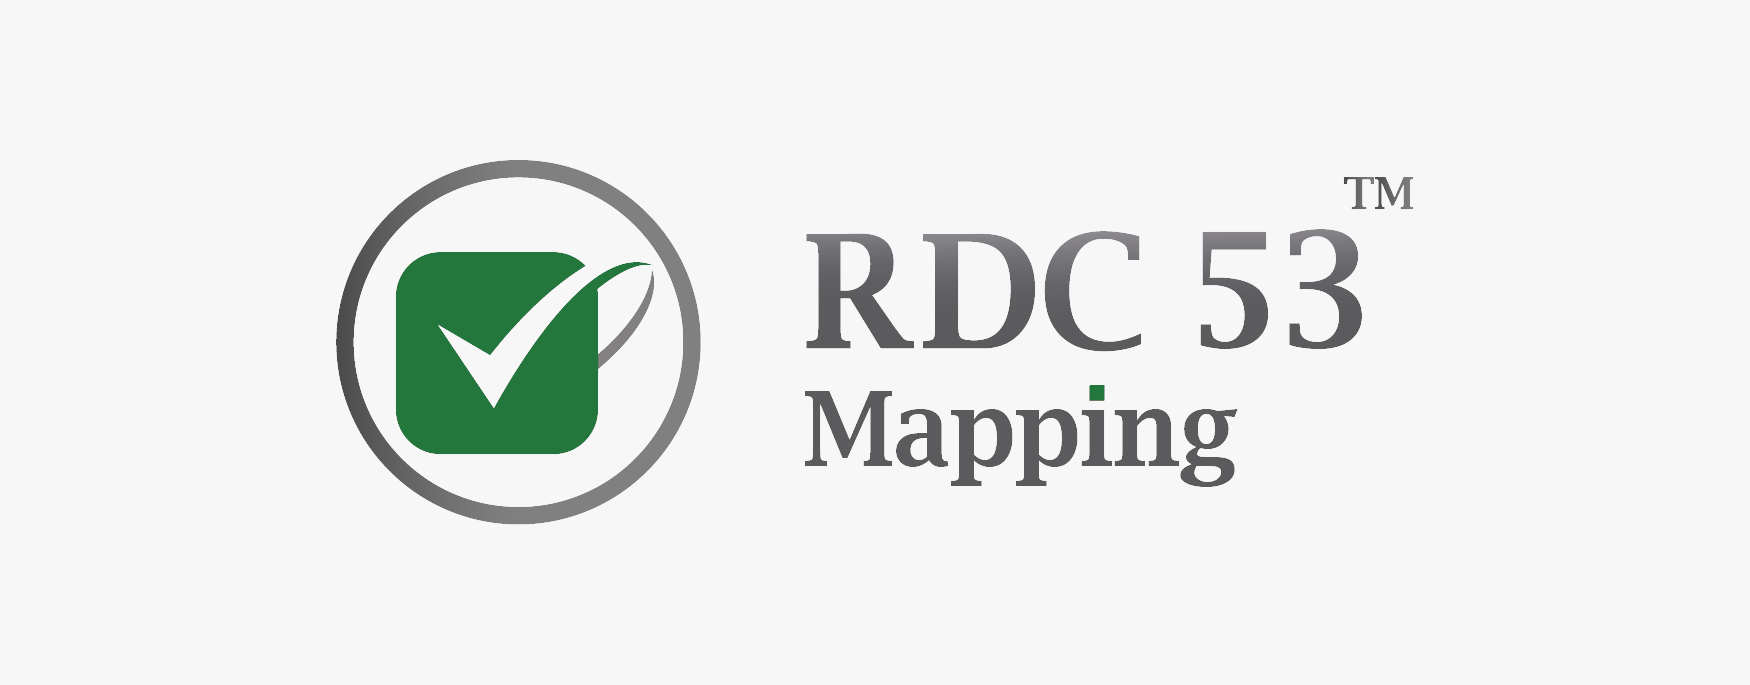 RDC53 Mapping